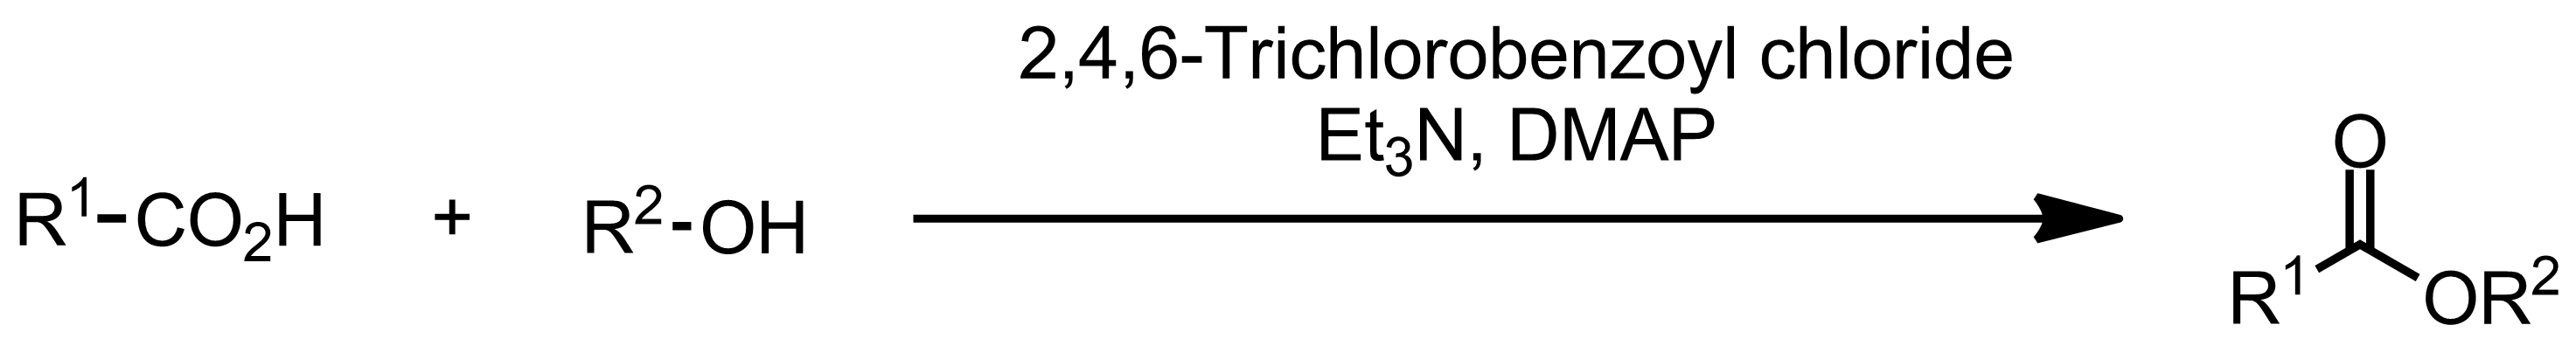 Schematic representation of the Yamaguchi Esterification.